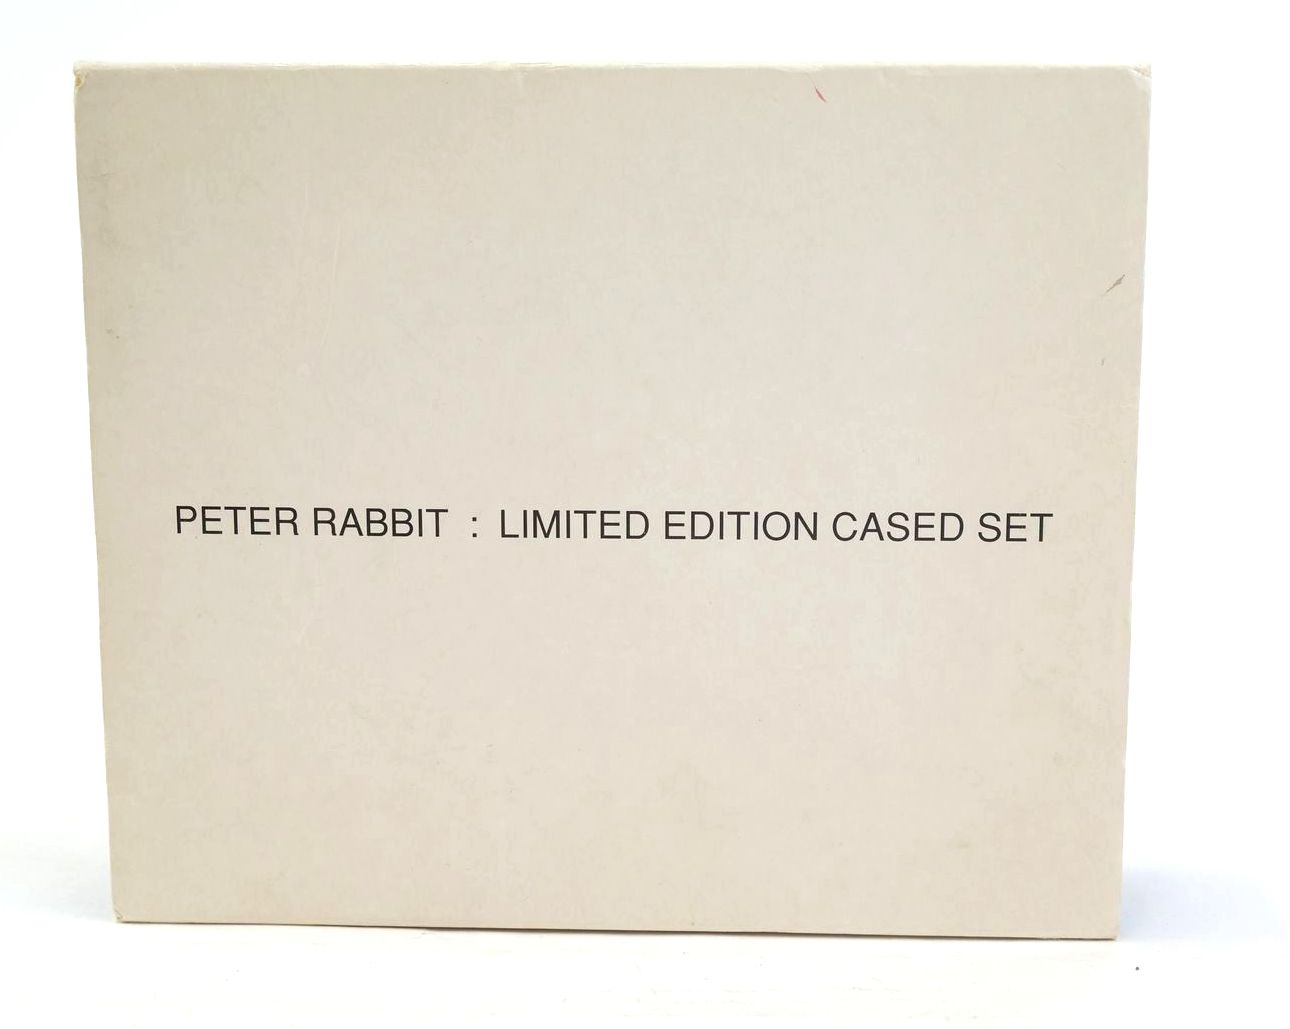 Photo of THE TALE OF PETER RABBIT (LIMITED EDITION CASED SET) written by Potter, Beatrix illustrated by Potter, Beatrix published by Frederick Warne & Co. (STOCK CODE: 1320082)  for sale by Stella & Rose's Books